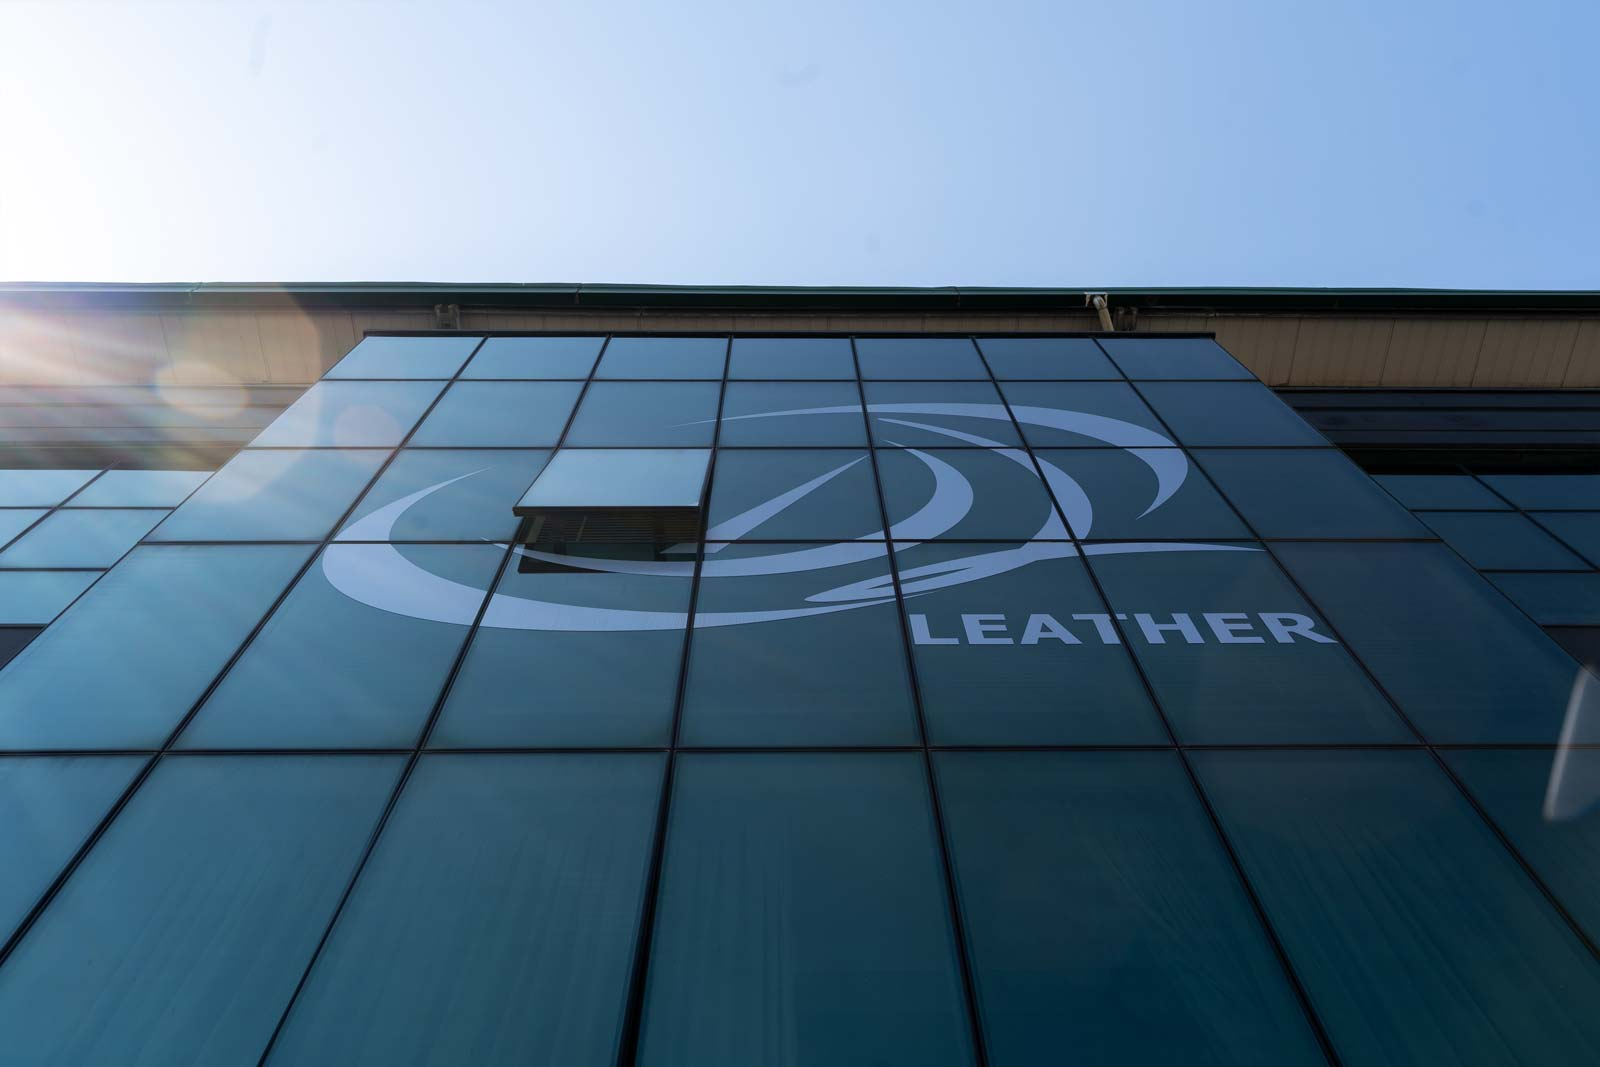 Dl Leather Conceria in solofra